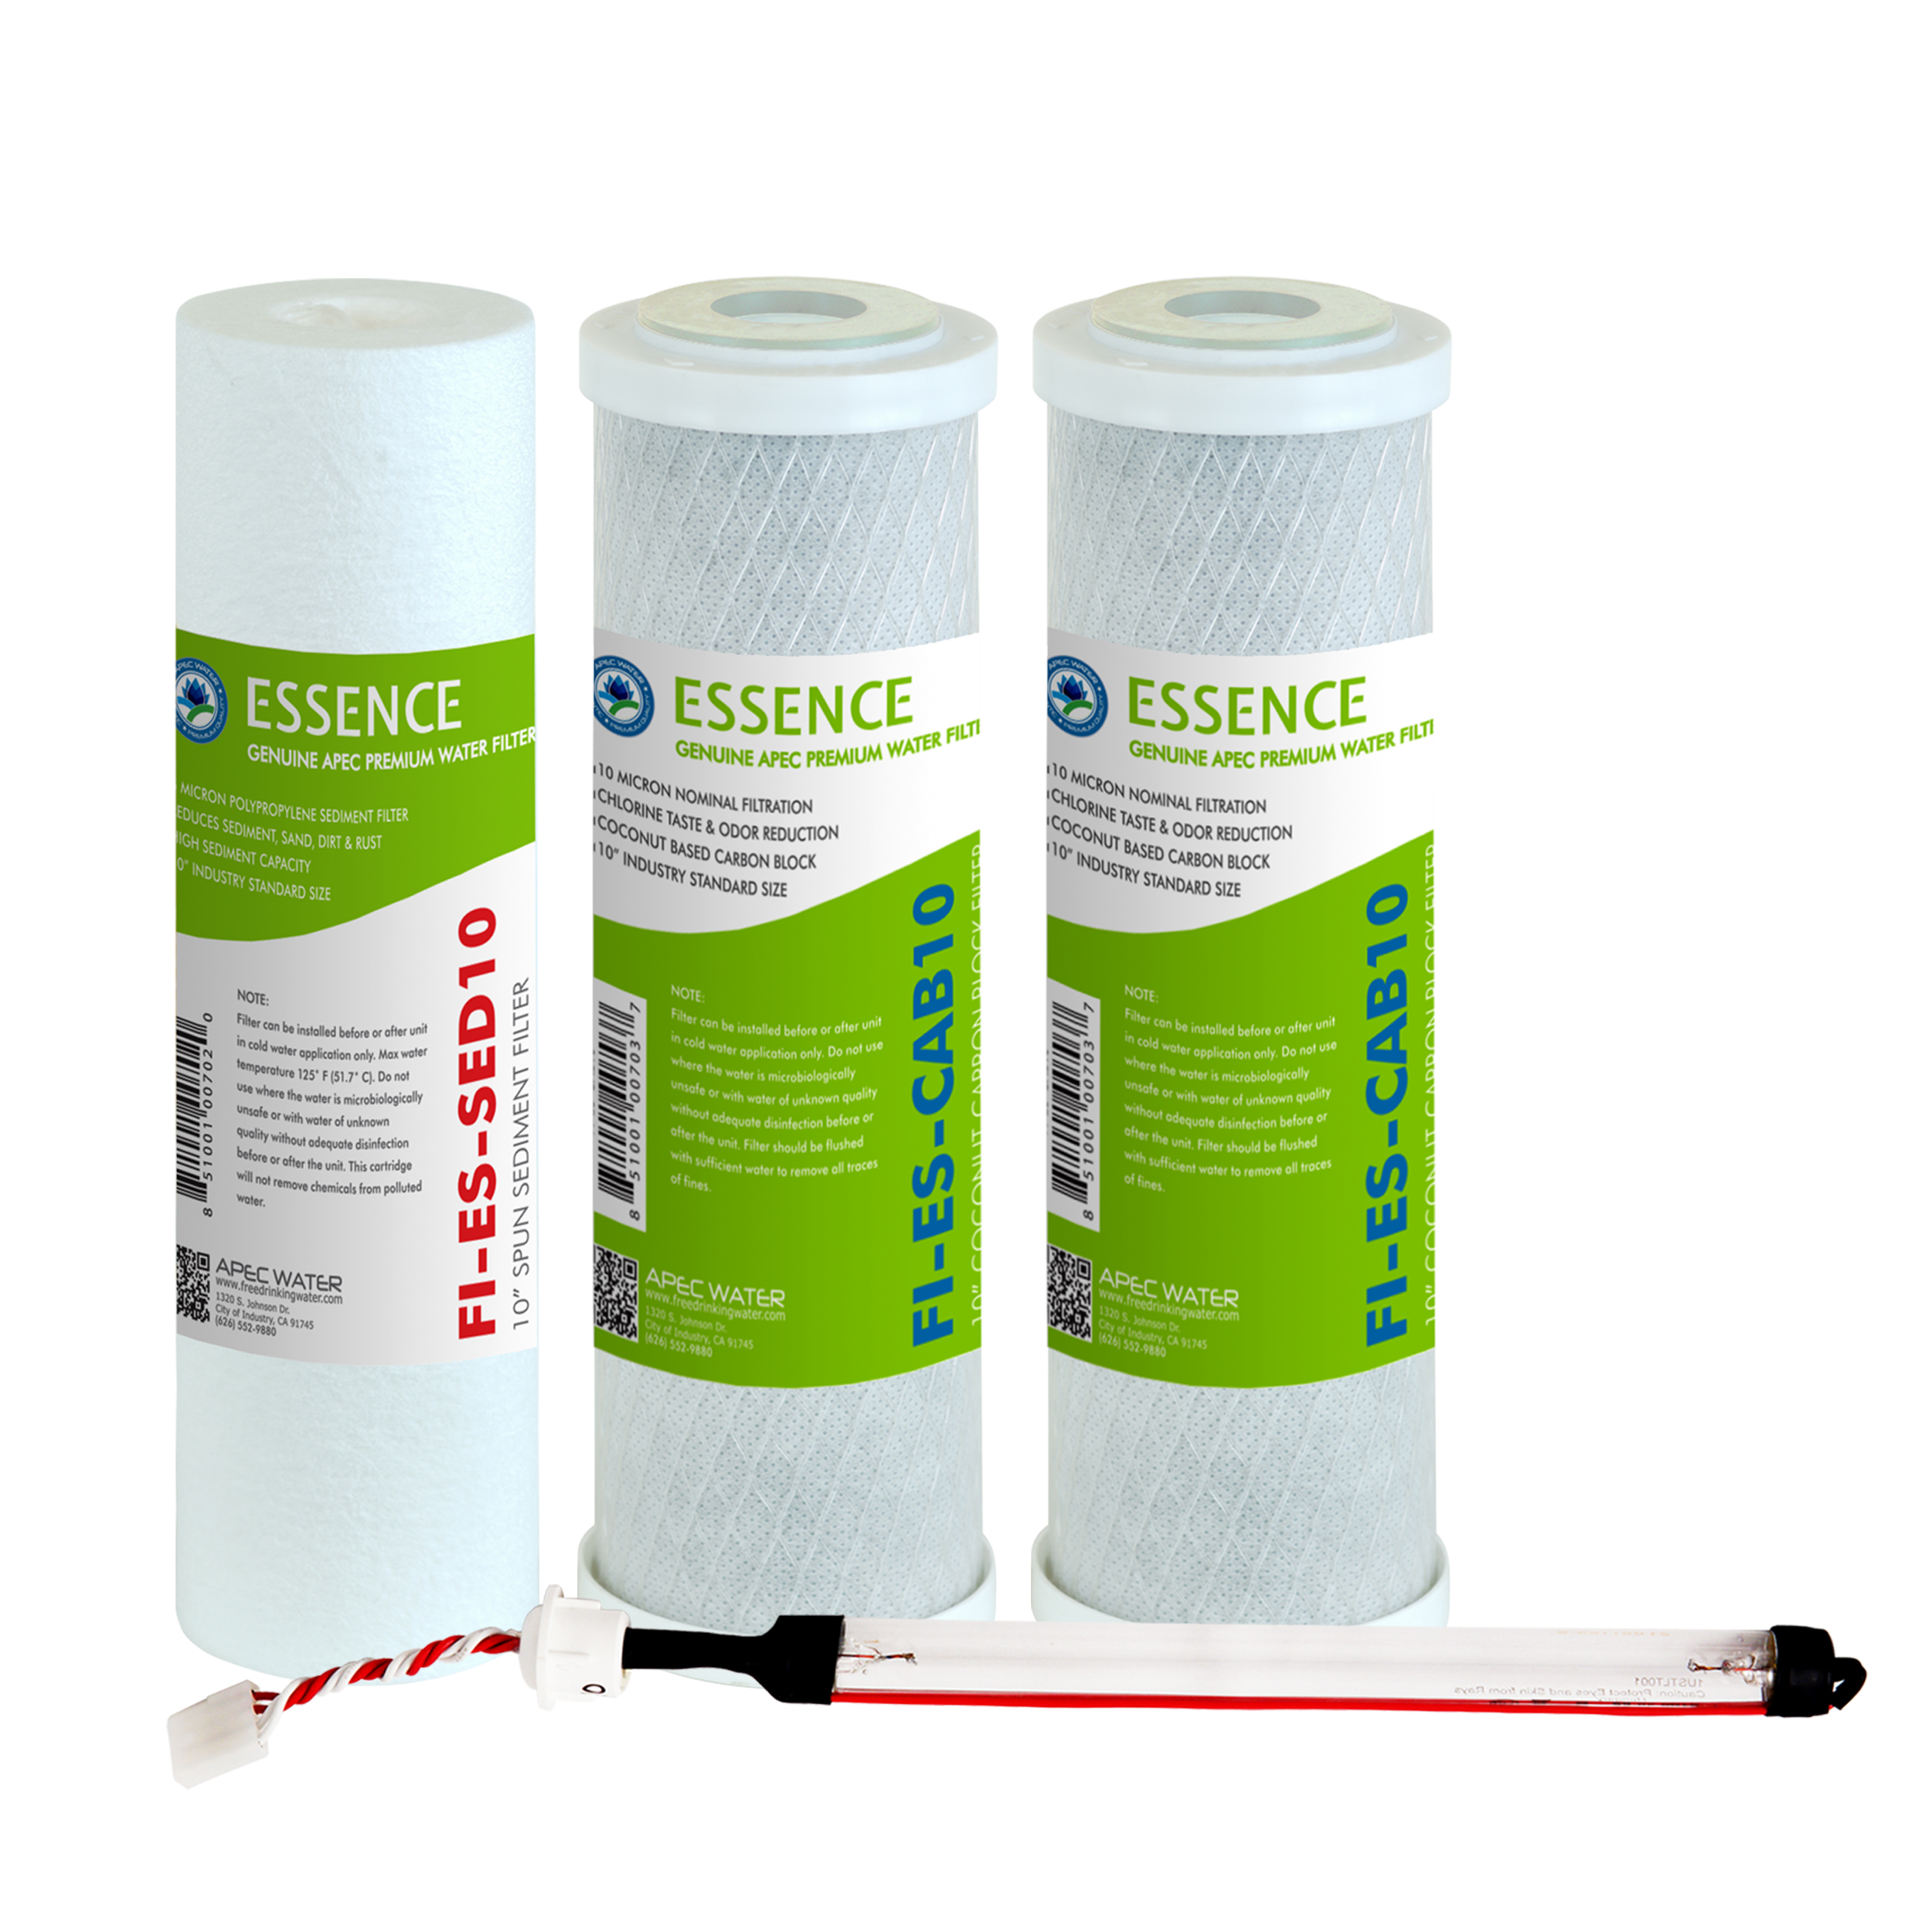 APEC FILTER-SET-ESUV High Capacity Replacement Filter Set for ESSENCE Series UV Ultra Violet Reverse Osmosis Water Filter System Stage 1, 2, 3&5